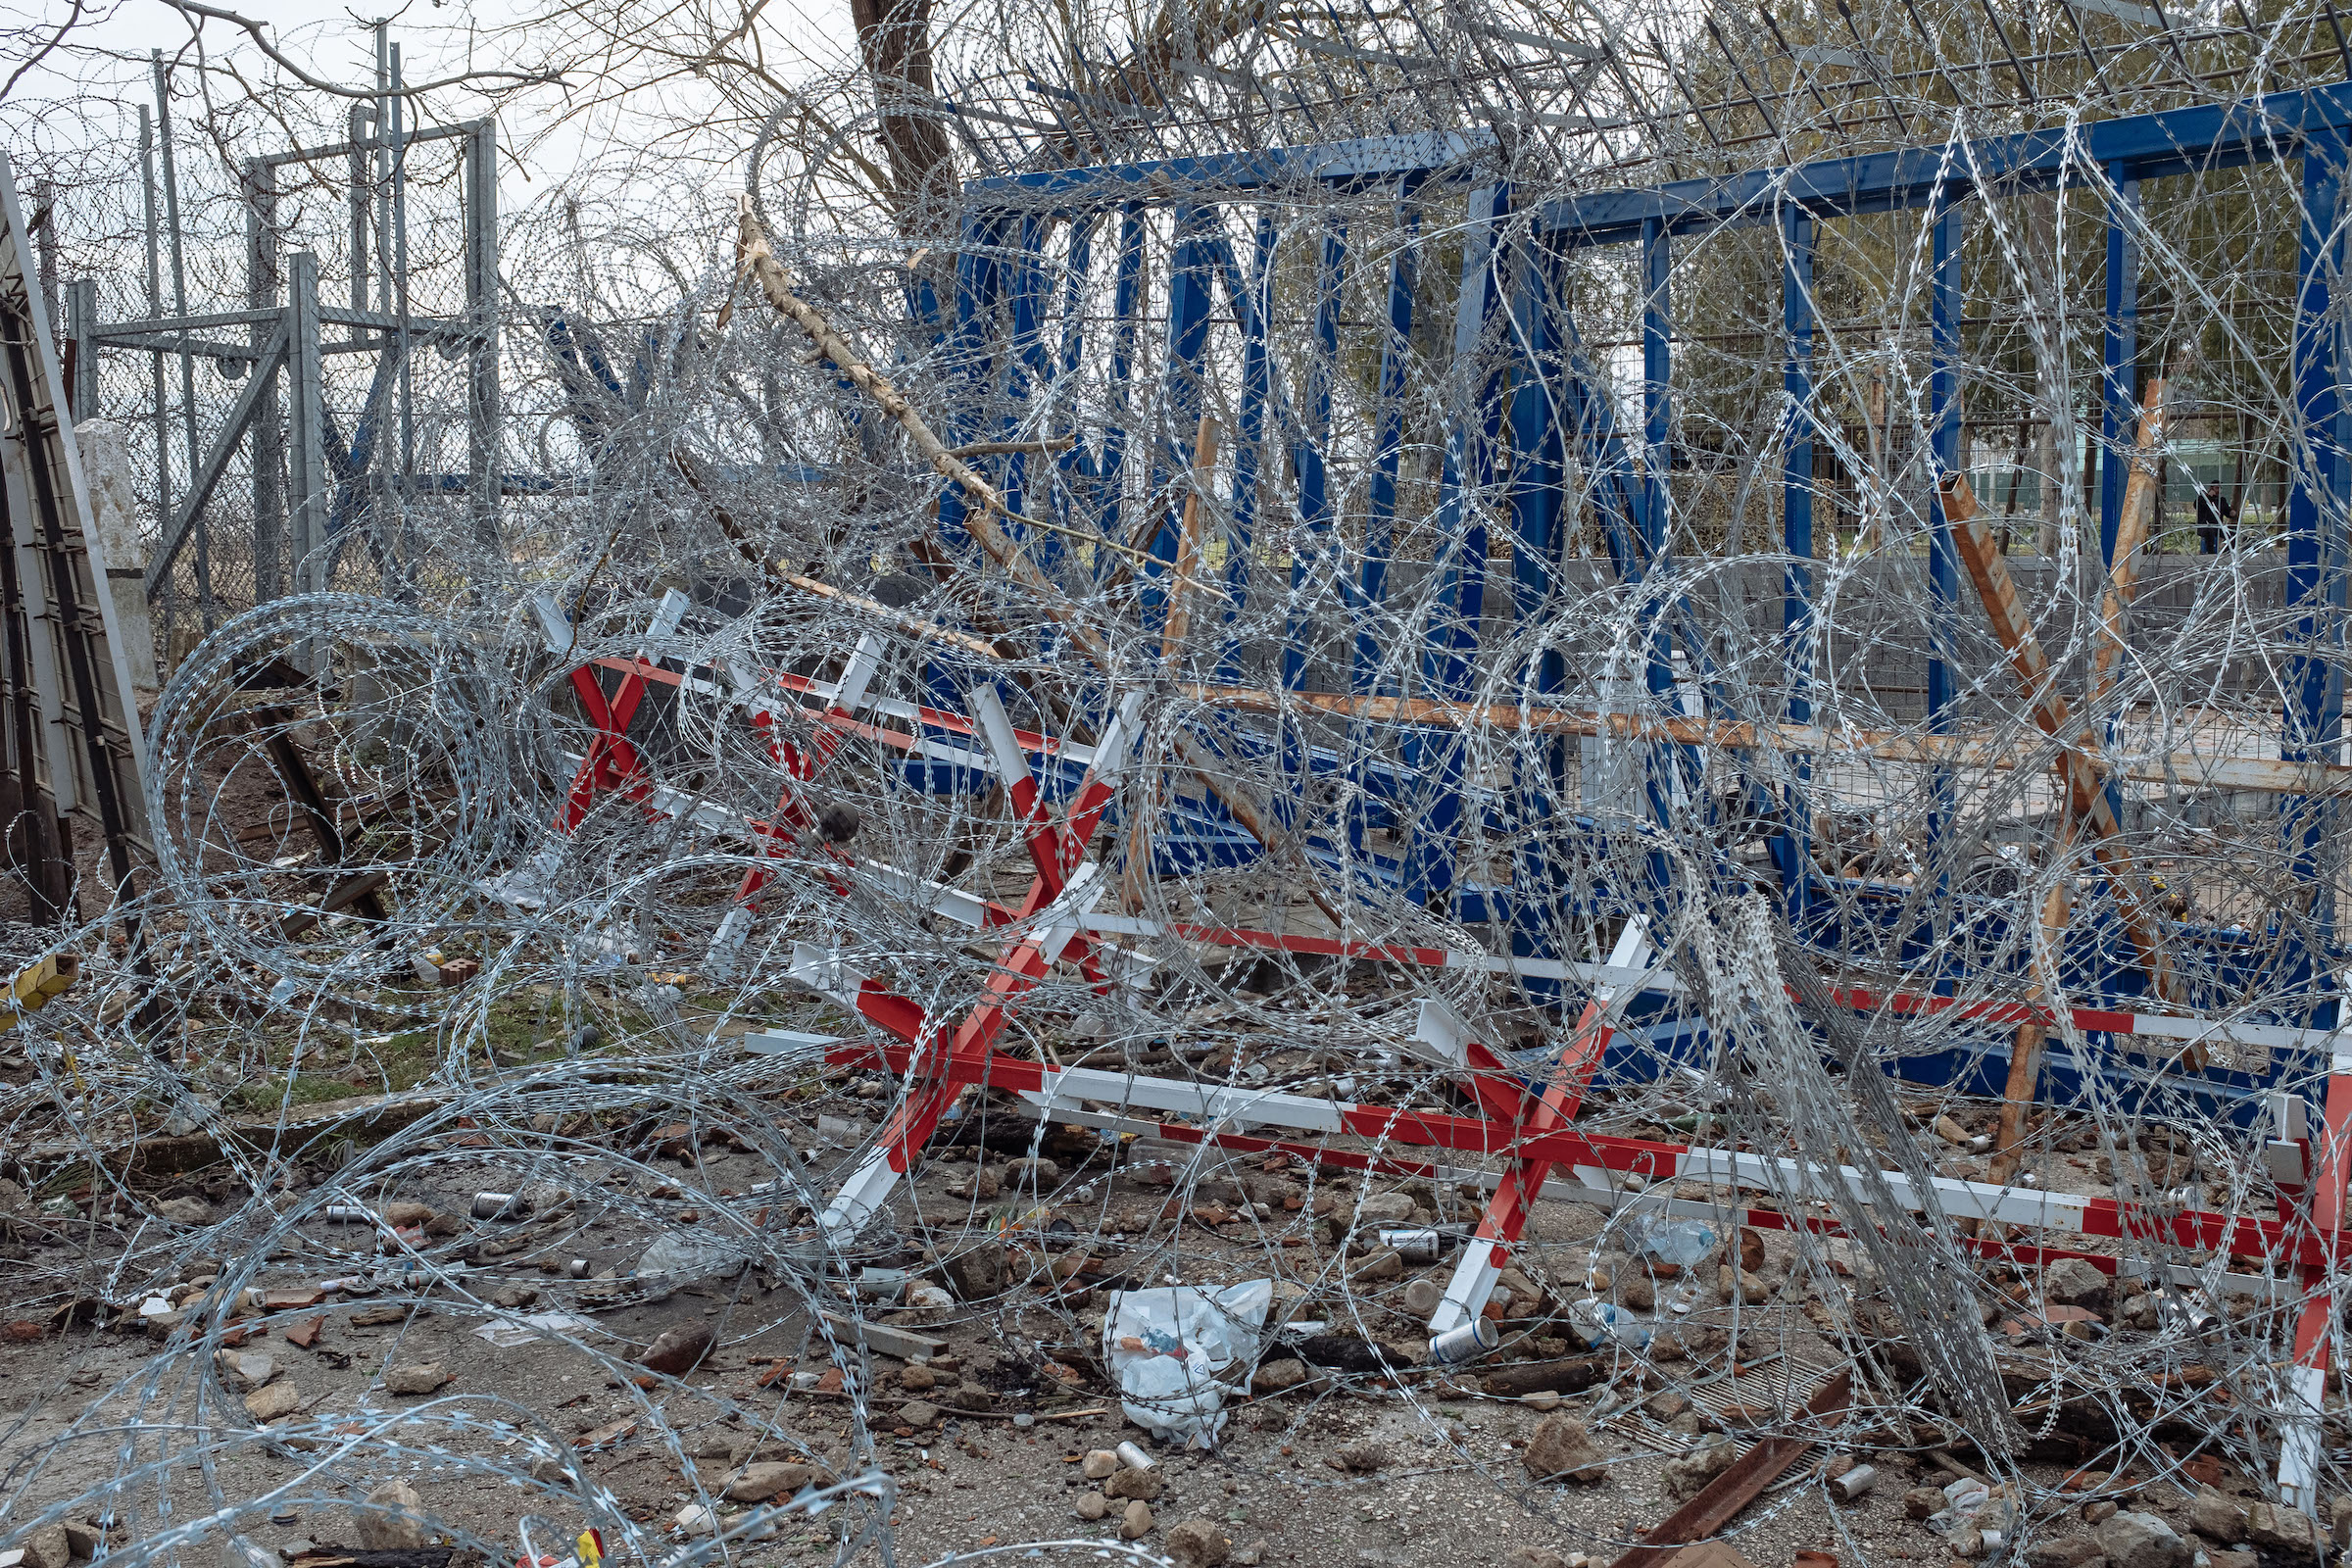 Razor wire at the border crossing.